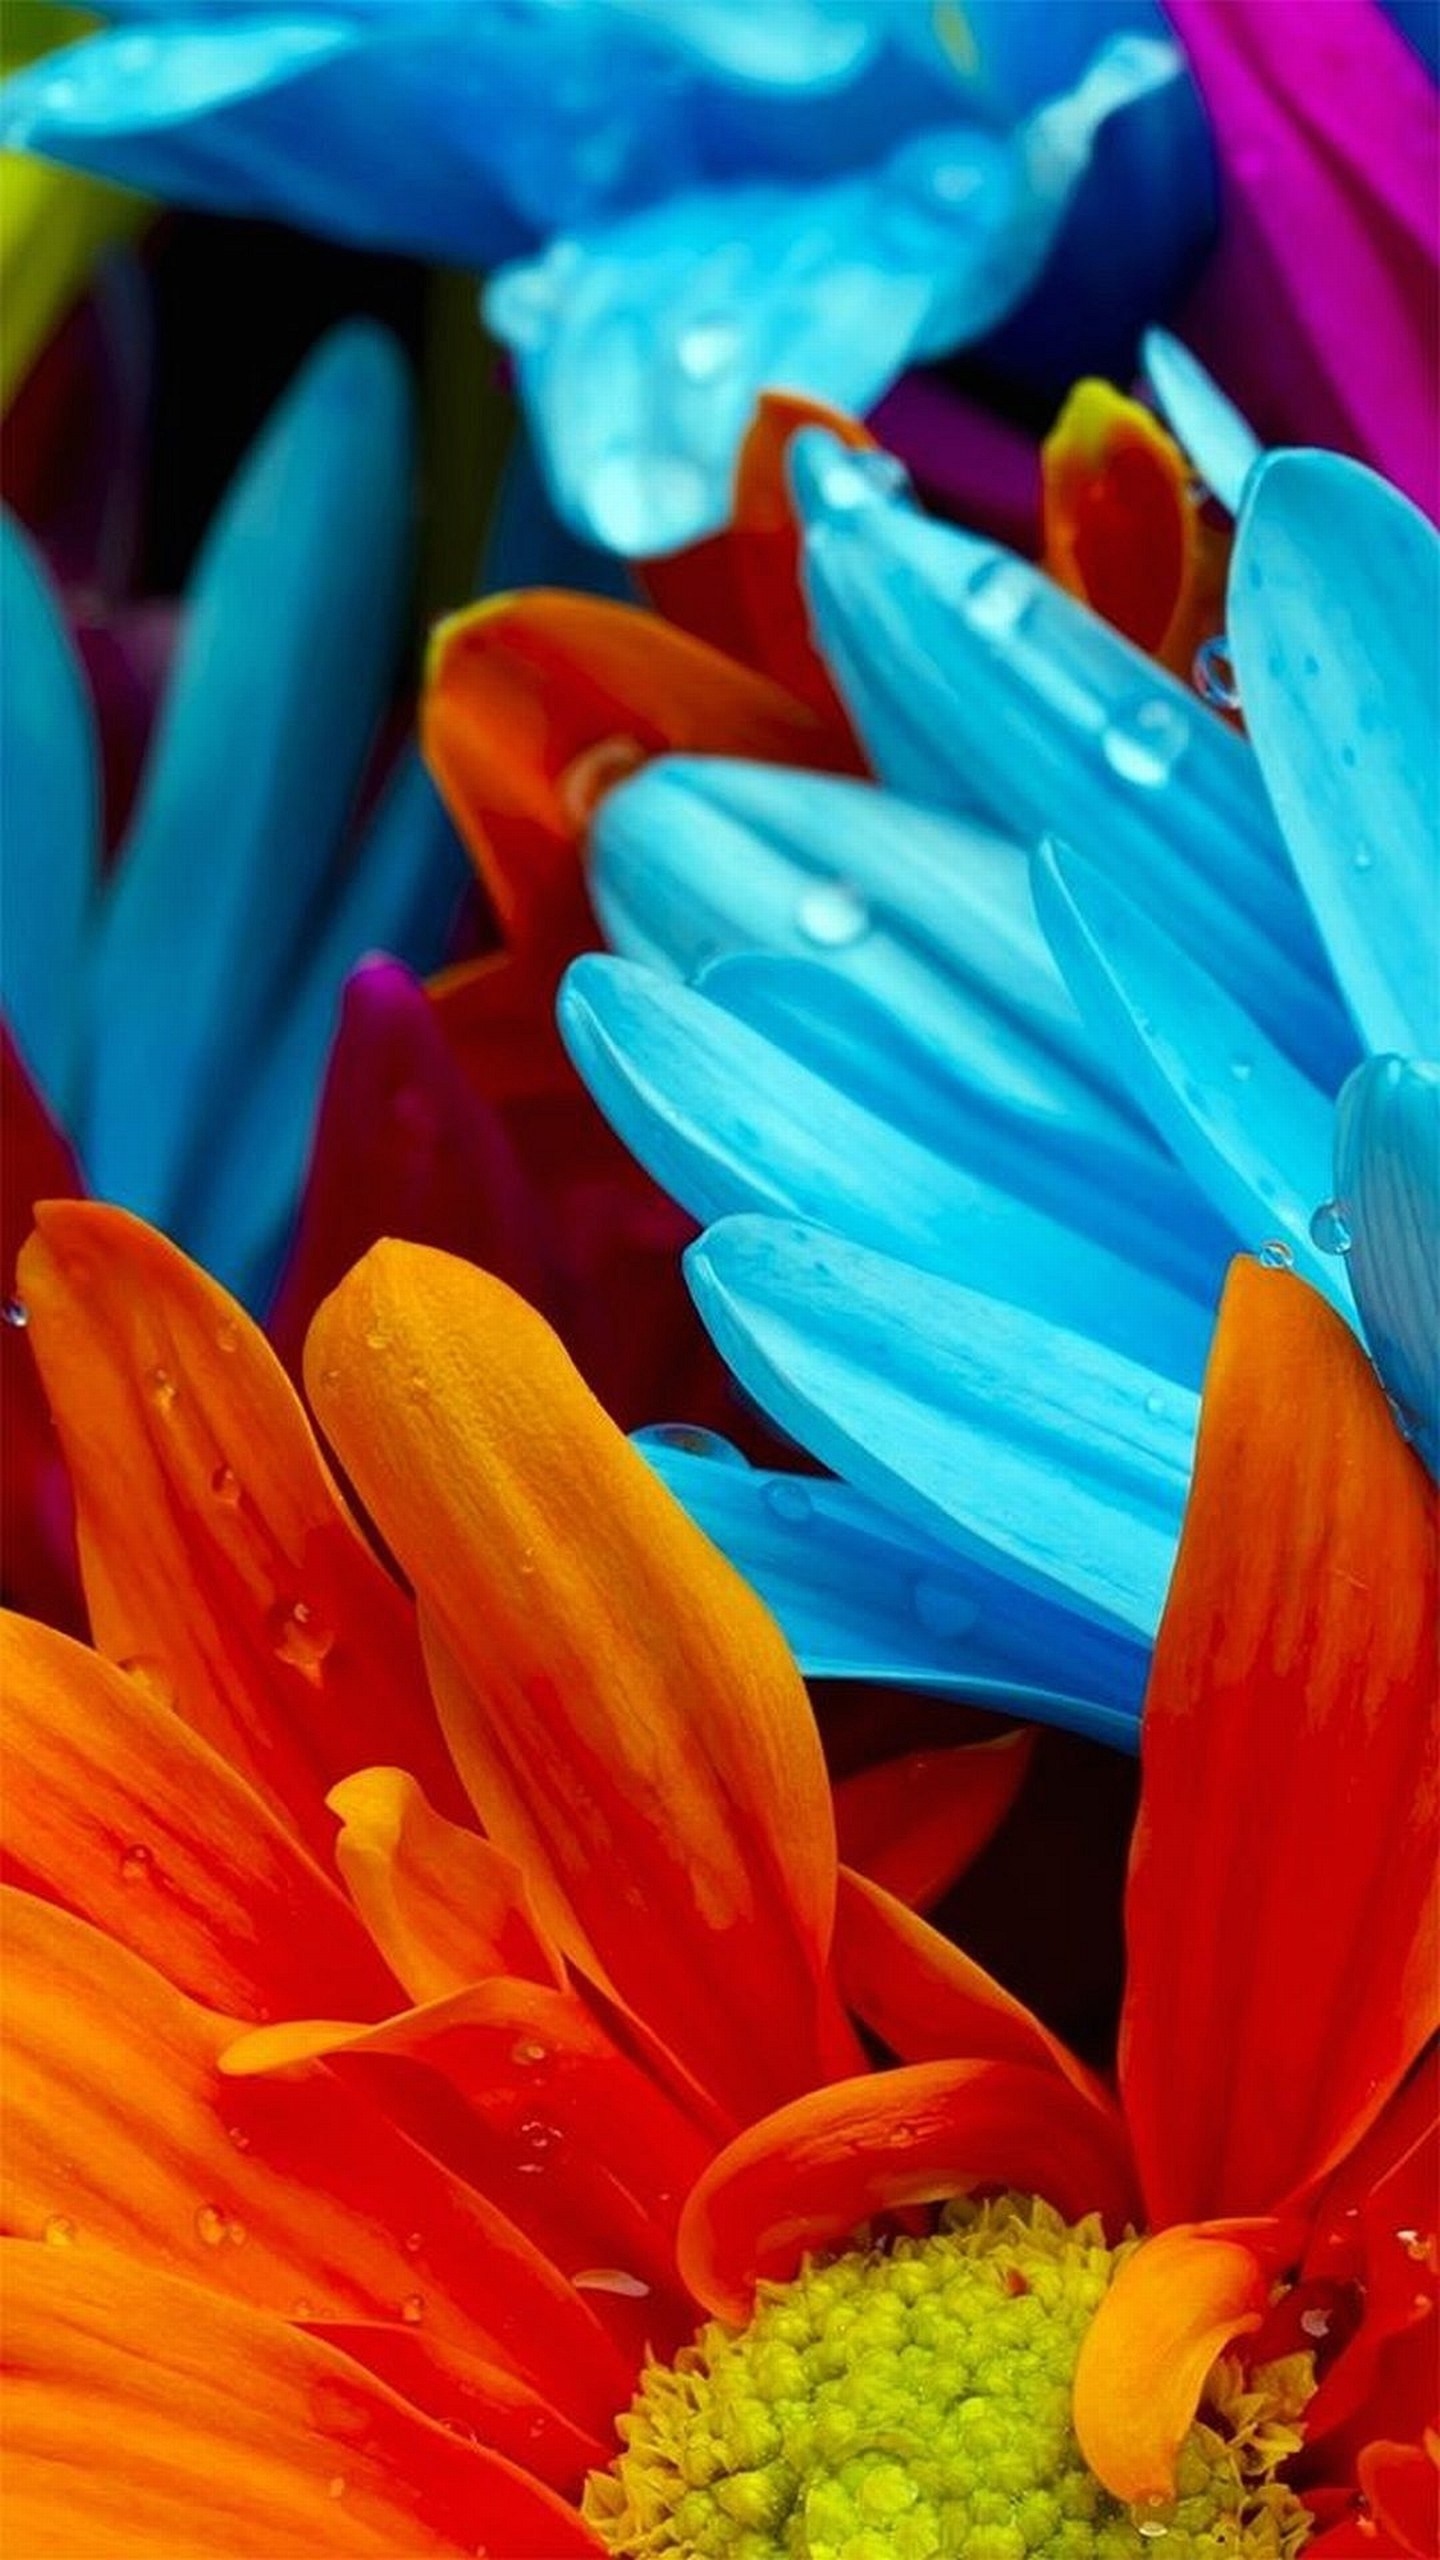 Colorful flower wallpapers 77 images - Art wallpaper 2160x3840 ...